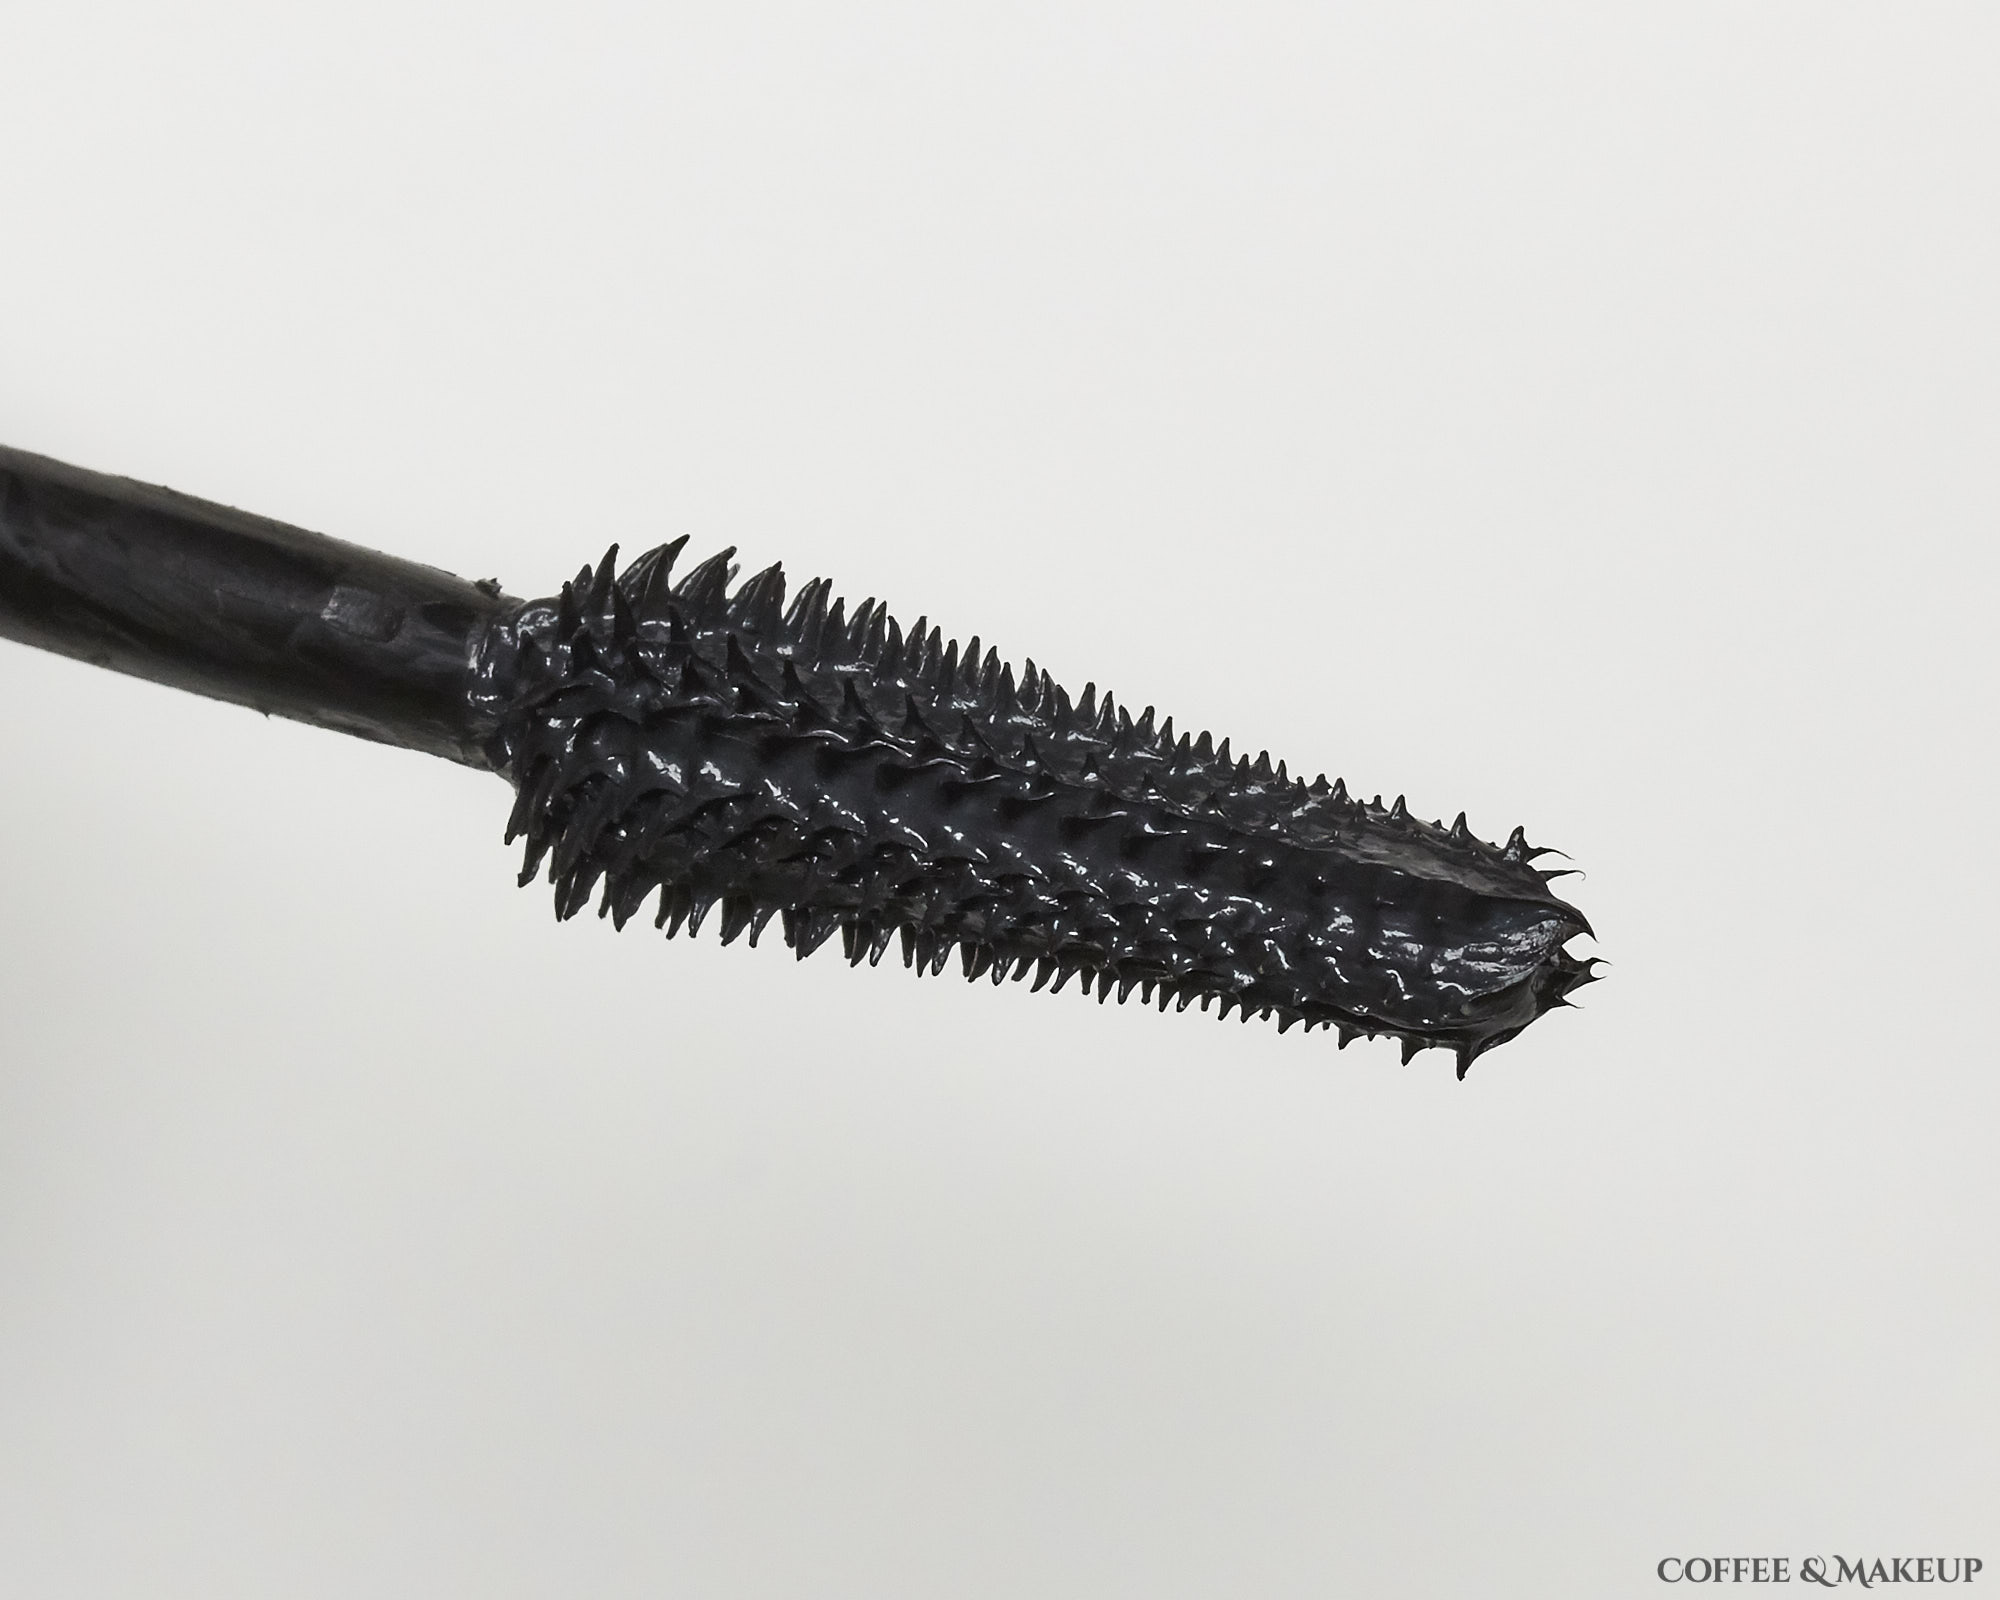 Loreal Unlimited Mascara